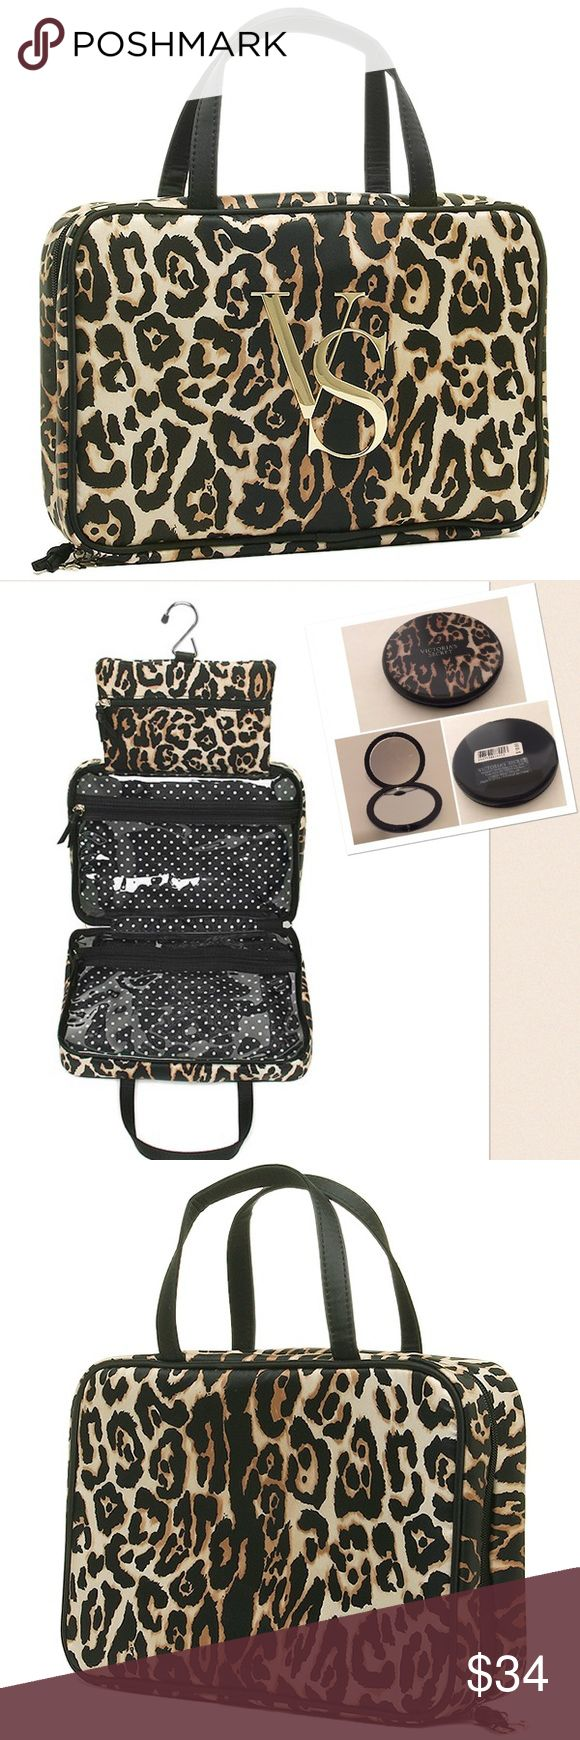 """New Victoria's Secret Leopard Hanging Cosmetic Bag ❤️New with tags, this great hanging cosmetic bag is great for traveling.✈️✈️Two clear zipper pockets with a little pouch where the hanging clip is❗️Easy  to clean bagApprox measurements 4""""L x 11"""" W x 7 1/2"""" H.  ❤️❤️PLUS BONUS GIFT-A COMPACT LEOPARD MIRROR Victoria's Secret Bags Cosmetic Bags & Cases"""